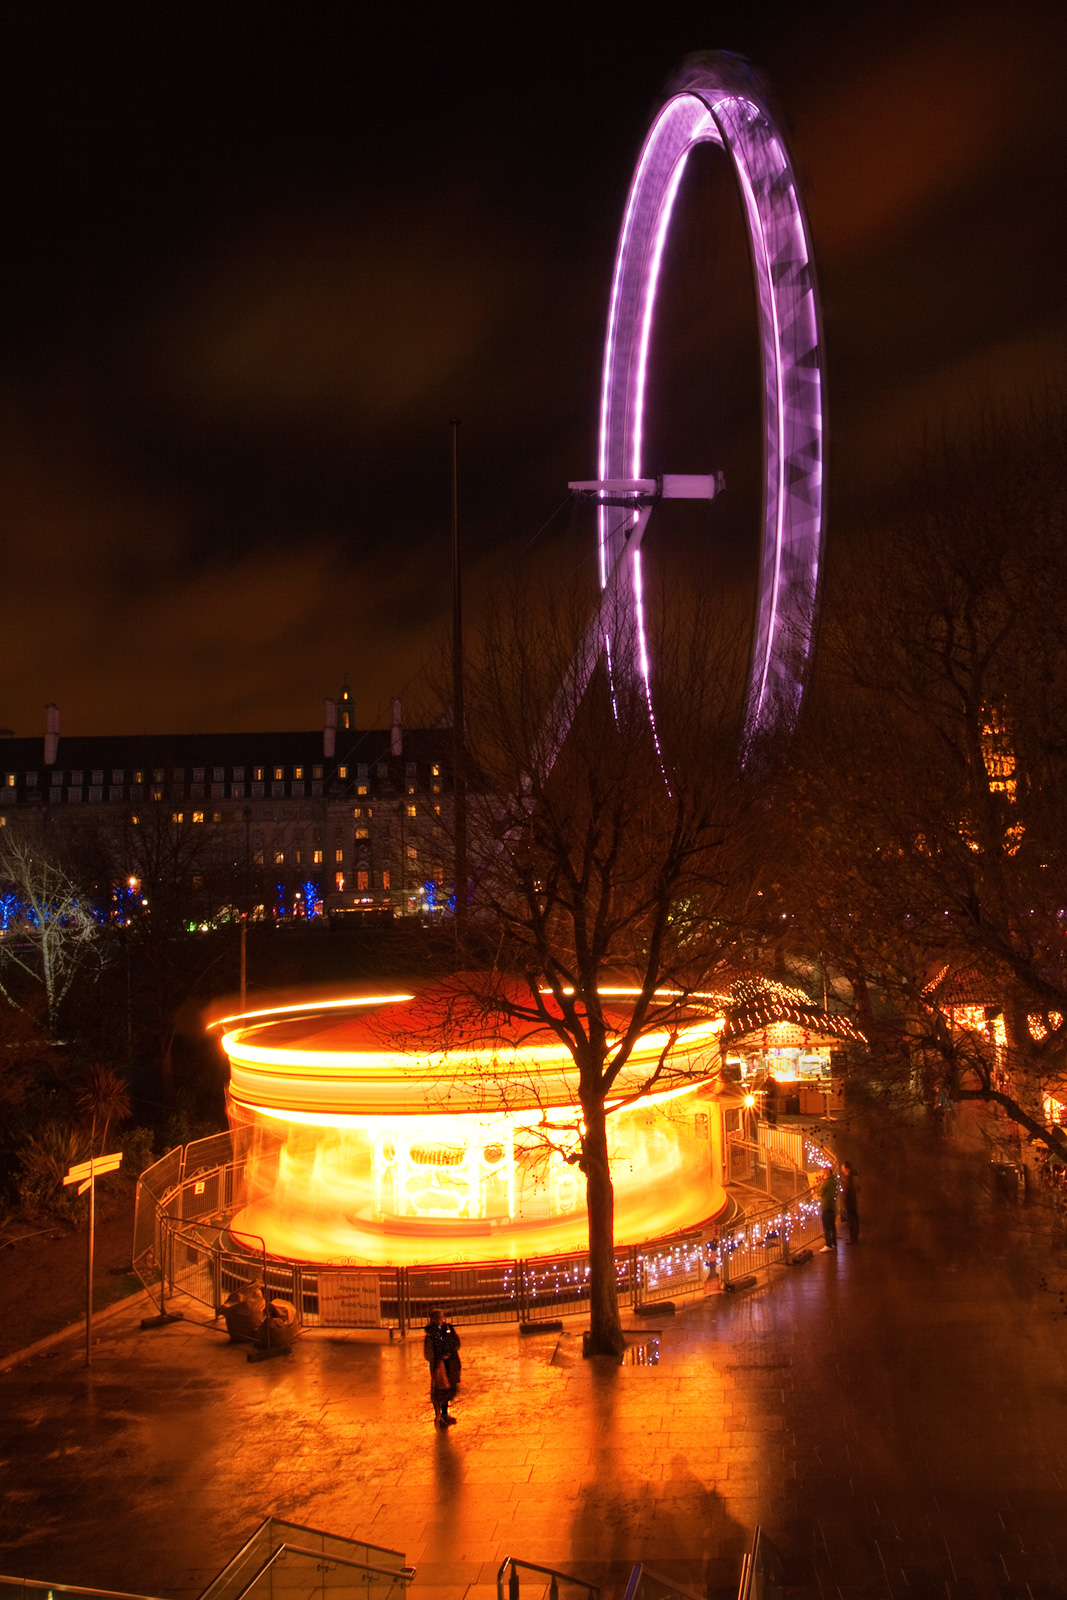 Silhouette near a merry-go-round and the London Eye